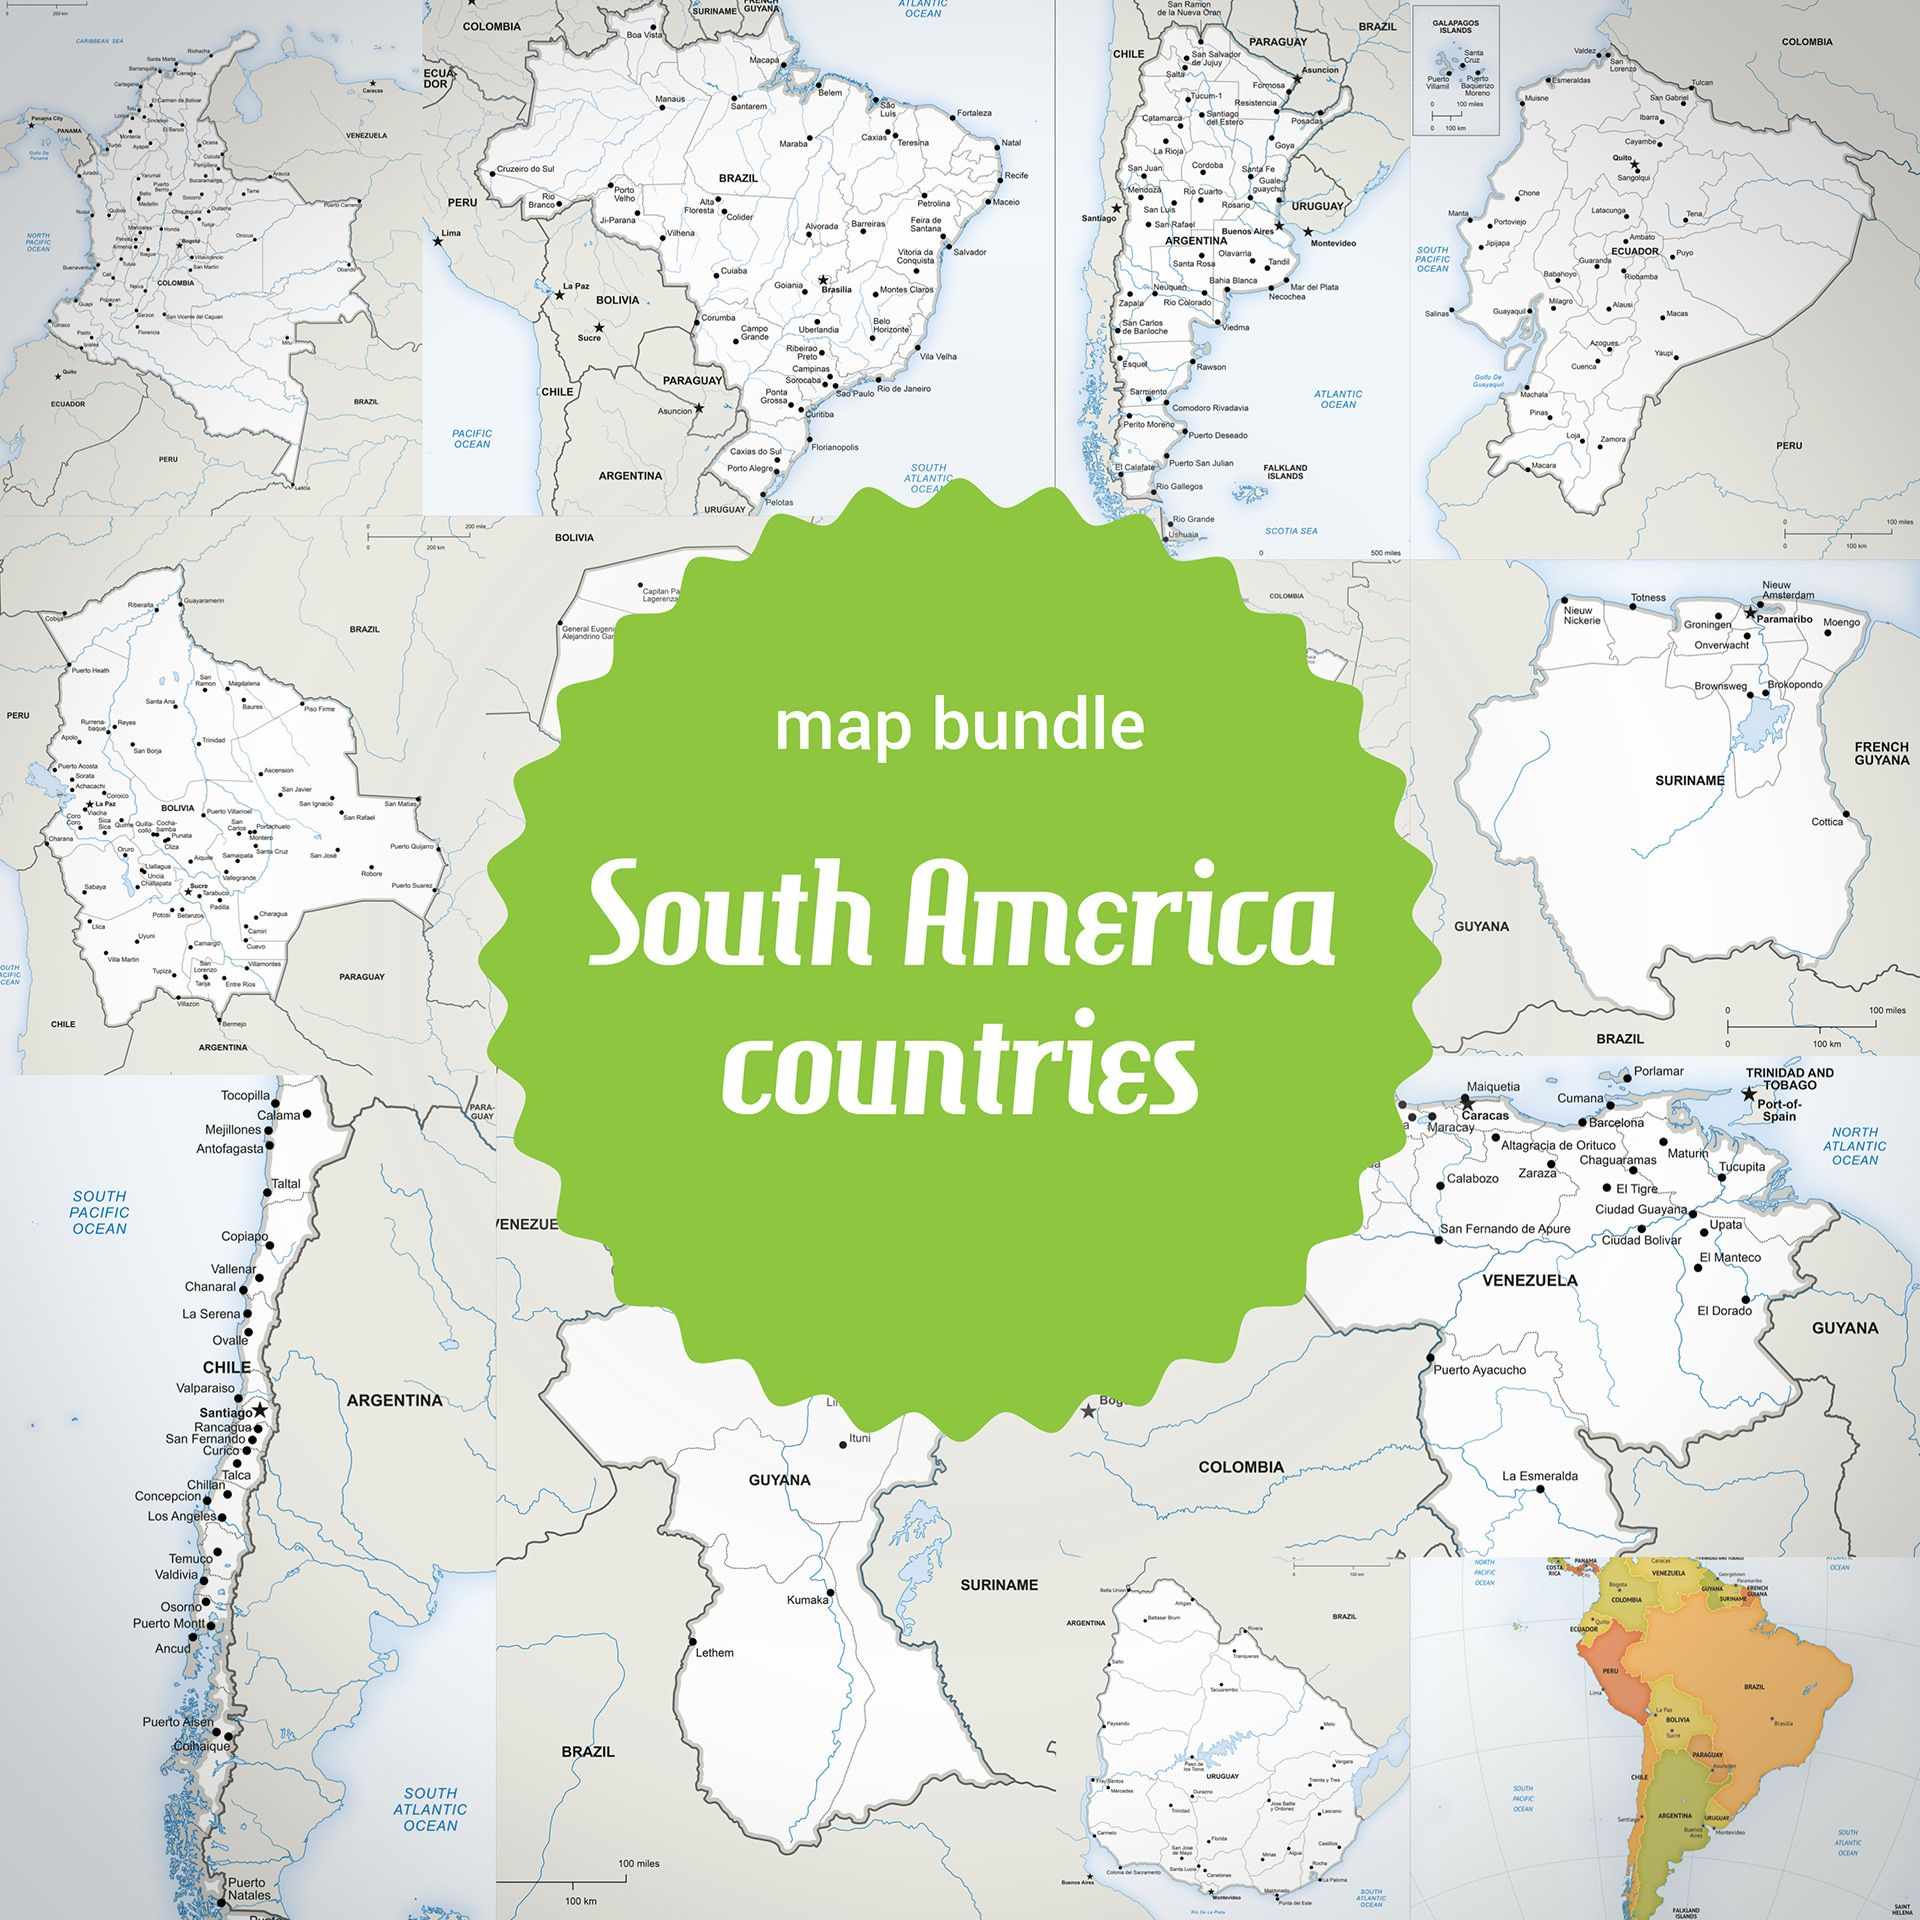 Buy 13 Vector Maps South America Countries: Sale 70% Off | Printable ...